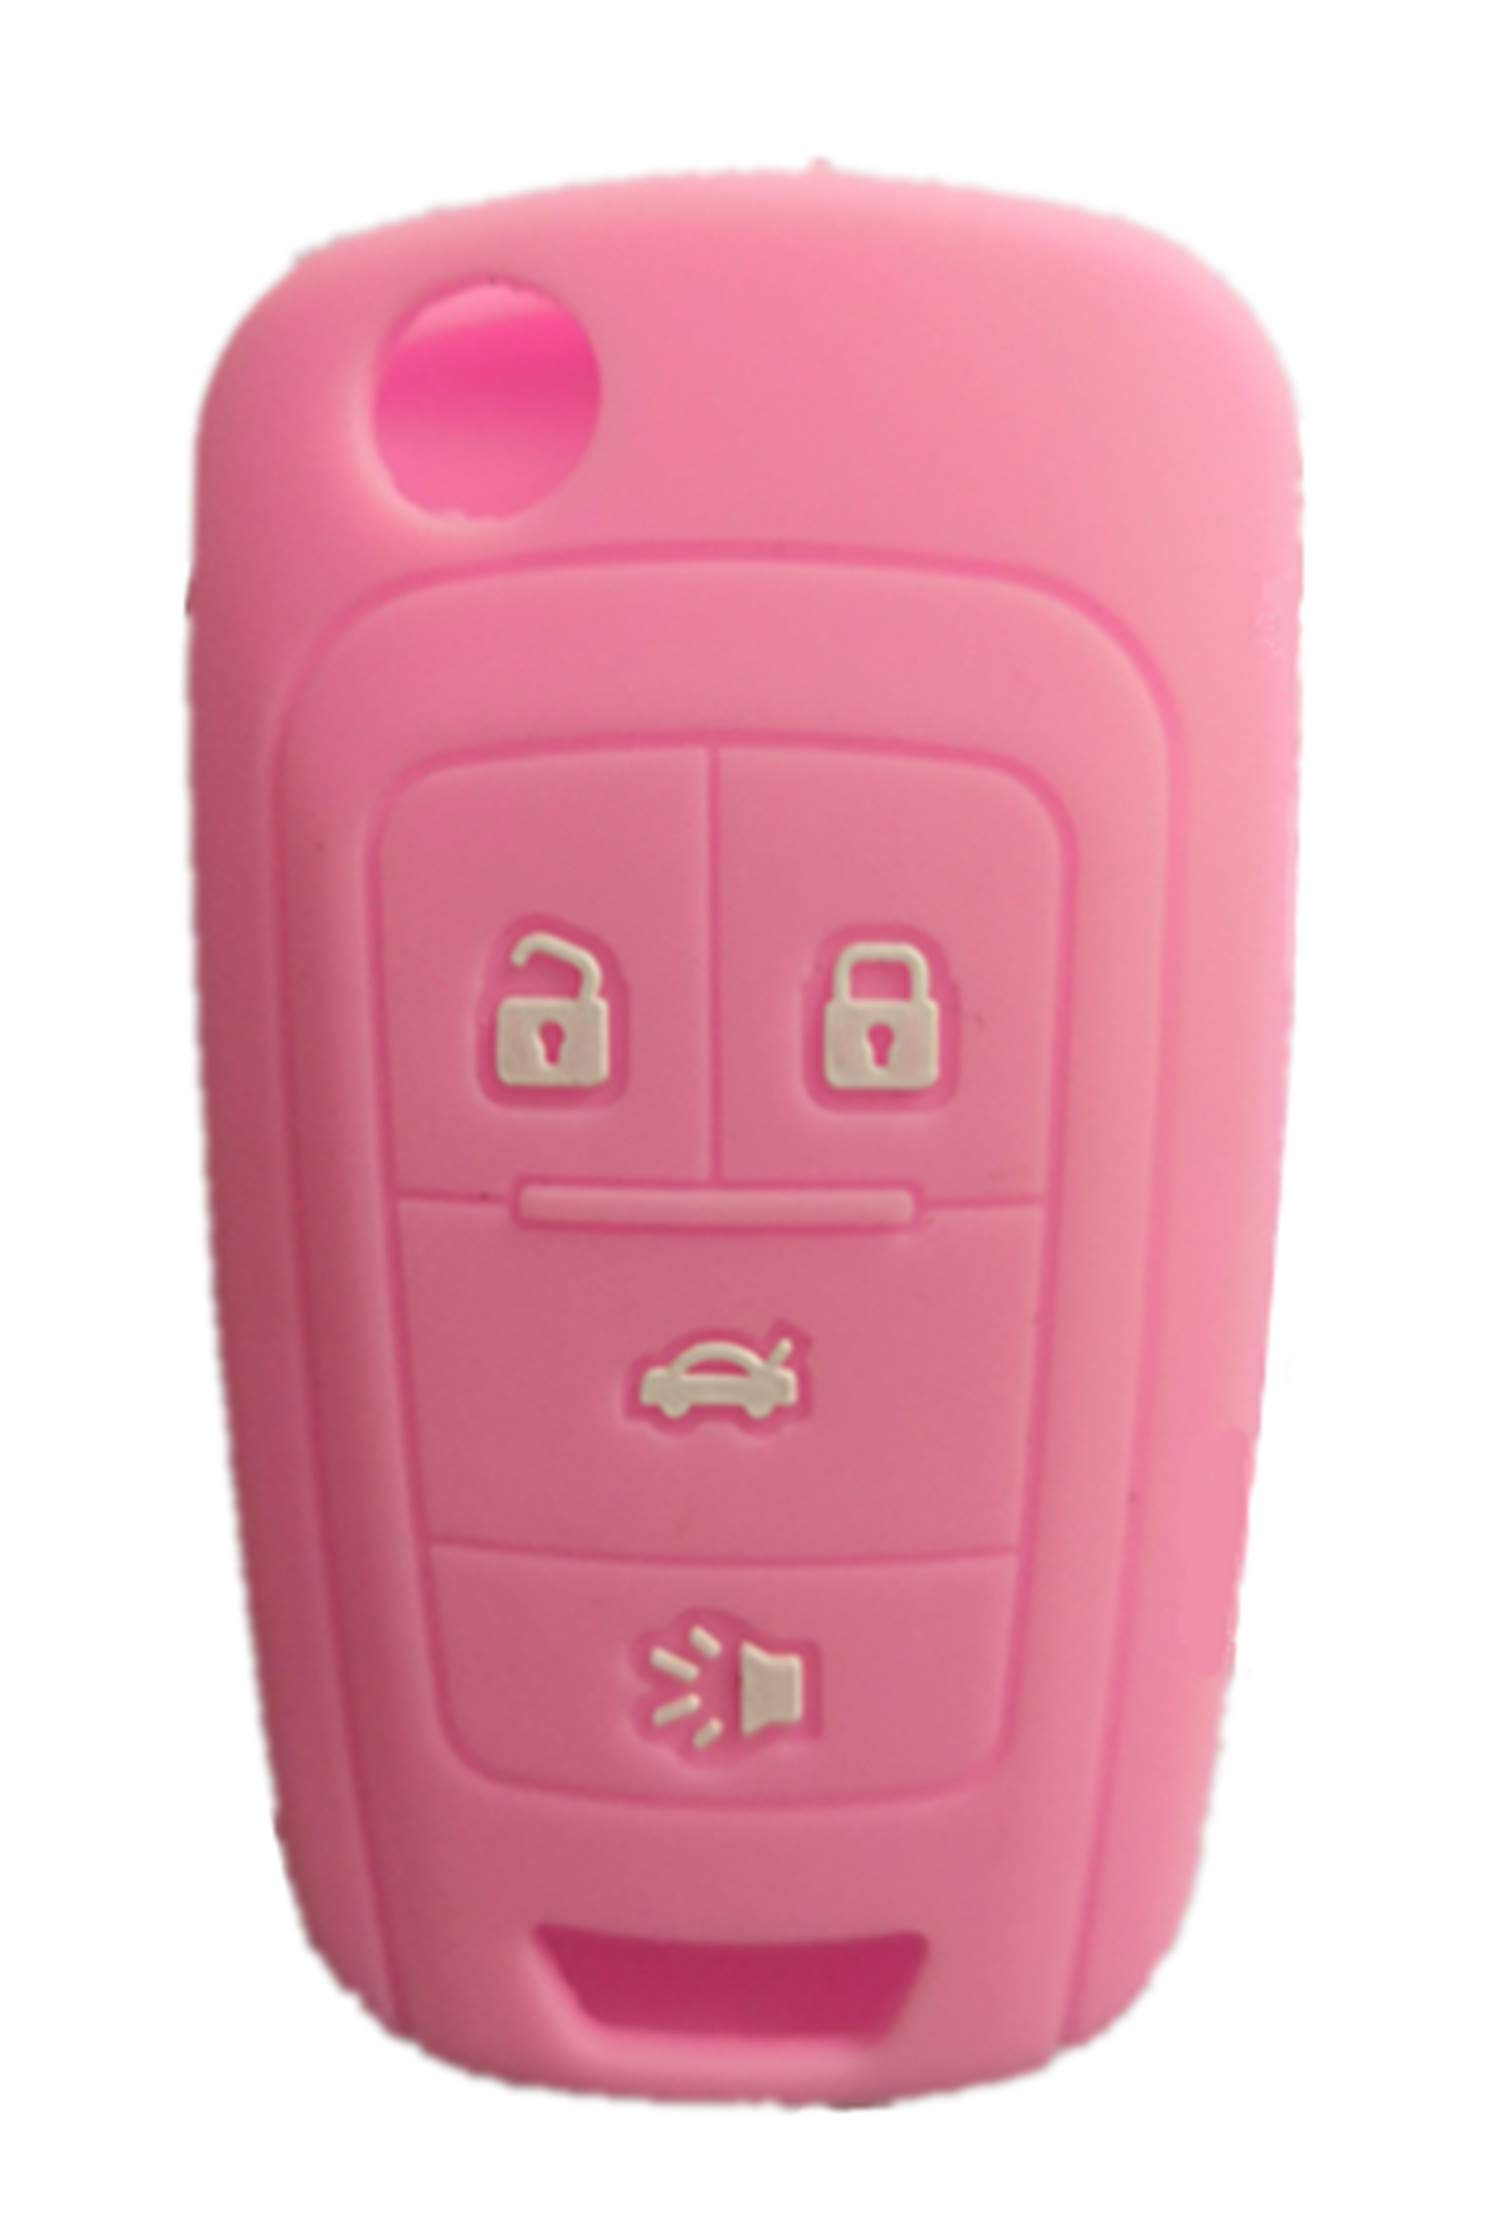 KAWIHEN Silicone Key Fob Cover Compatible with Chevrolet Chevy Cruze Equinox Impala Malibu Sonic Spark Volt Camaro 4 Buttons Key Fob Case Cover OHT01060512 KR55WK50073